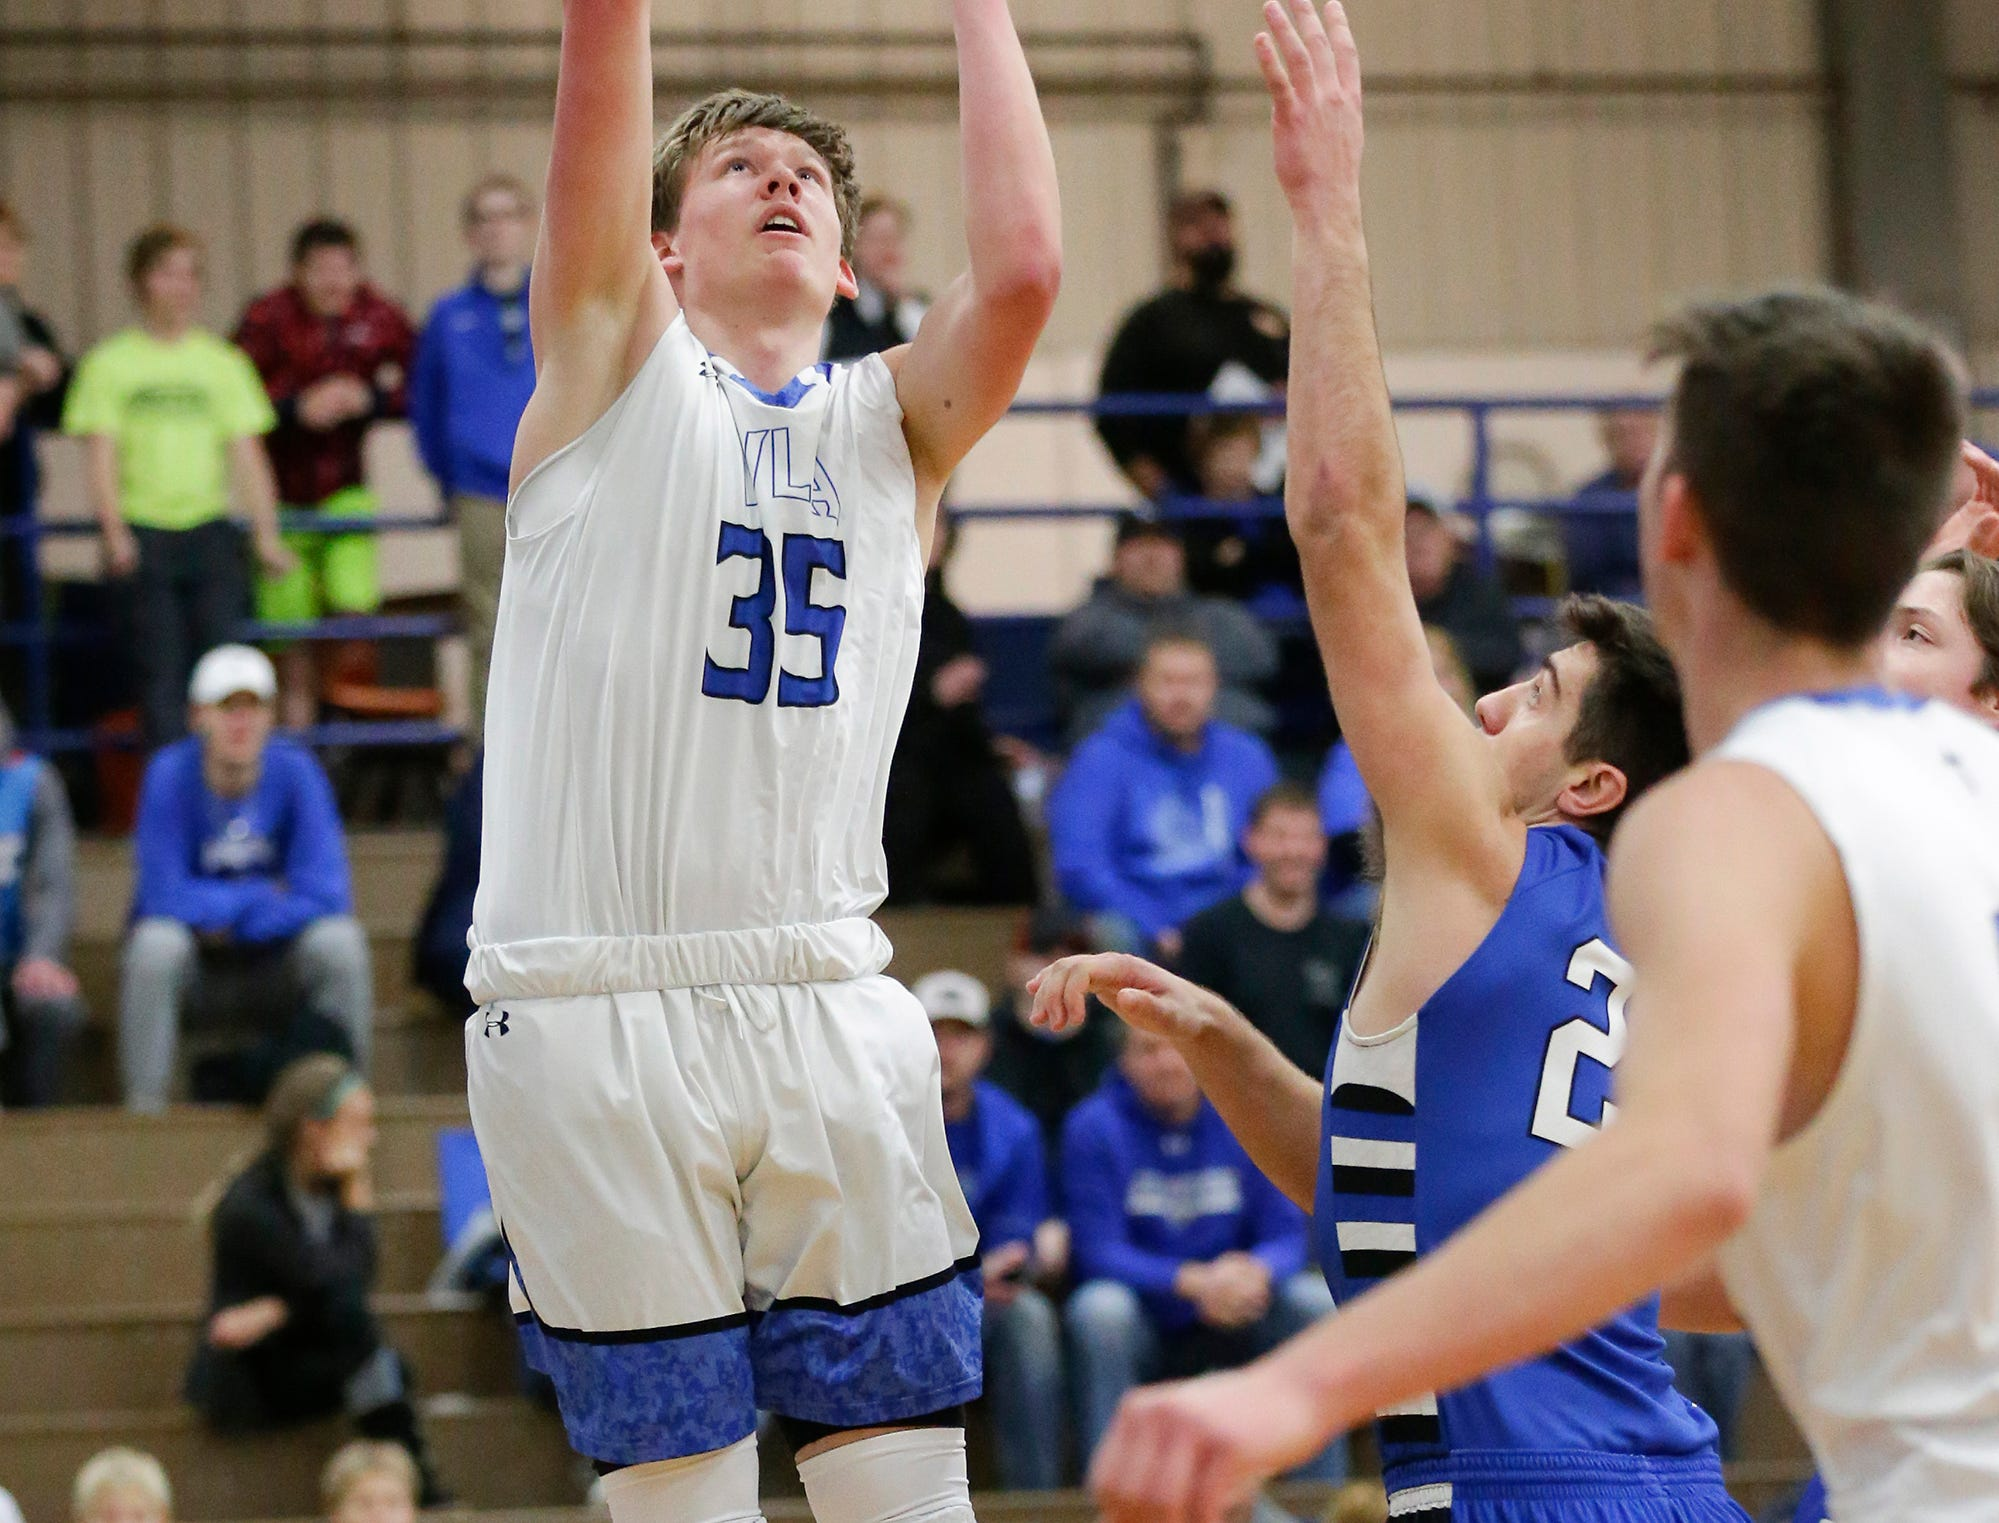 Winnebago Lutheran Academy boys basketball's Gabe Pruss goes up for a shot over St. Mary's Springs Academy's Justin Ditter Tuesday, Jan. 8, 2019, during their game in Fond du Lac. Winnebago Lutheran Academy won the game 69-66.